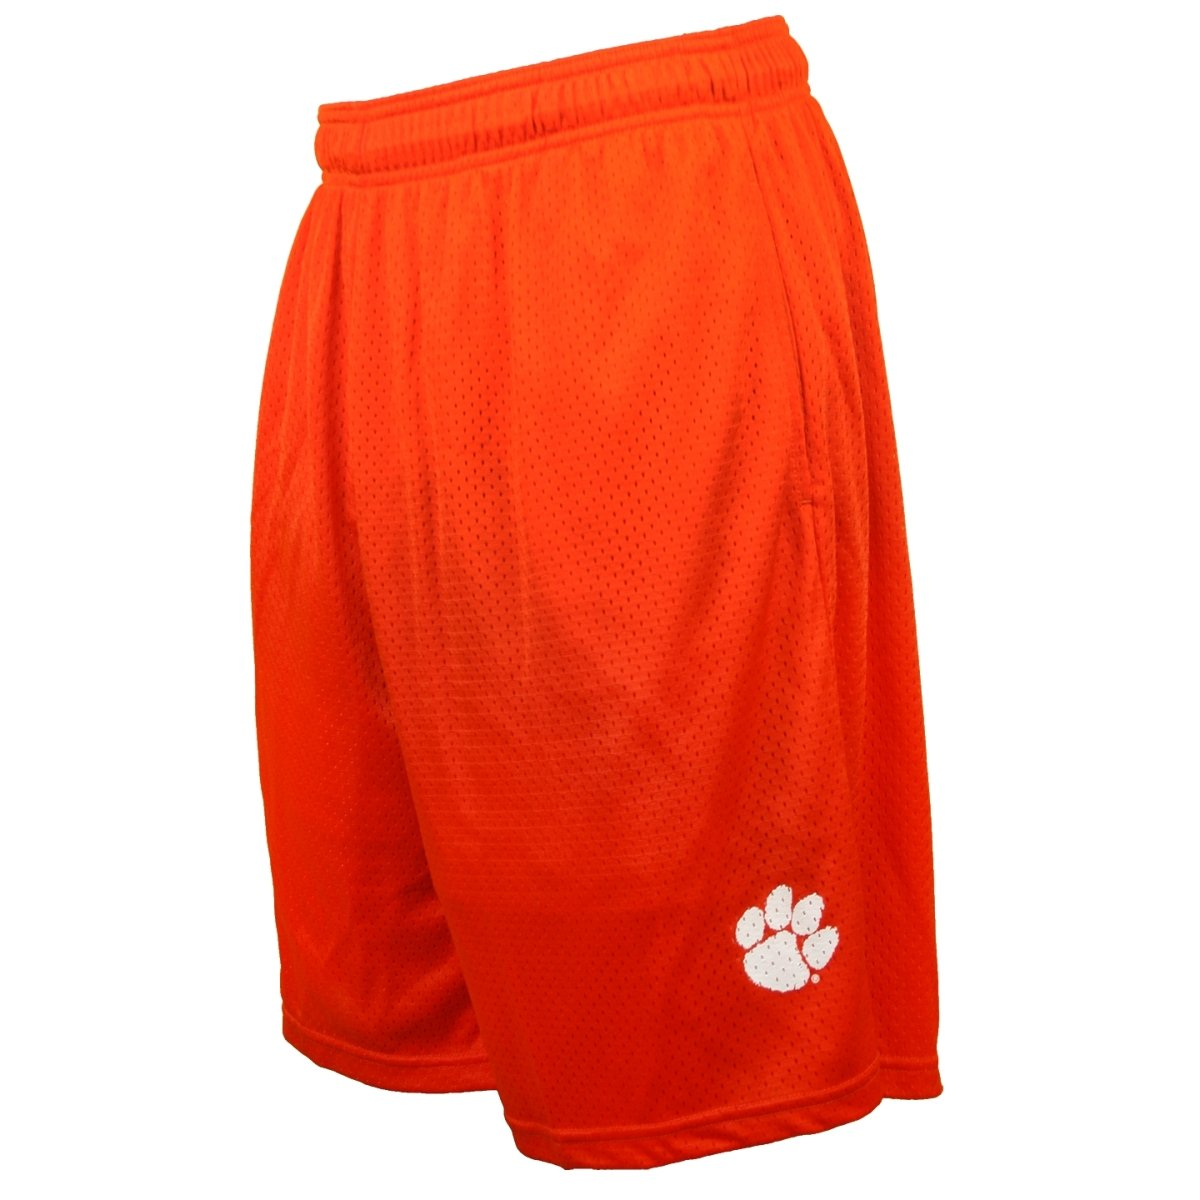 Mesh Shorts With Pocket With Paw - Mr. Knickerbocker